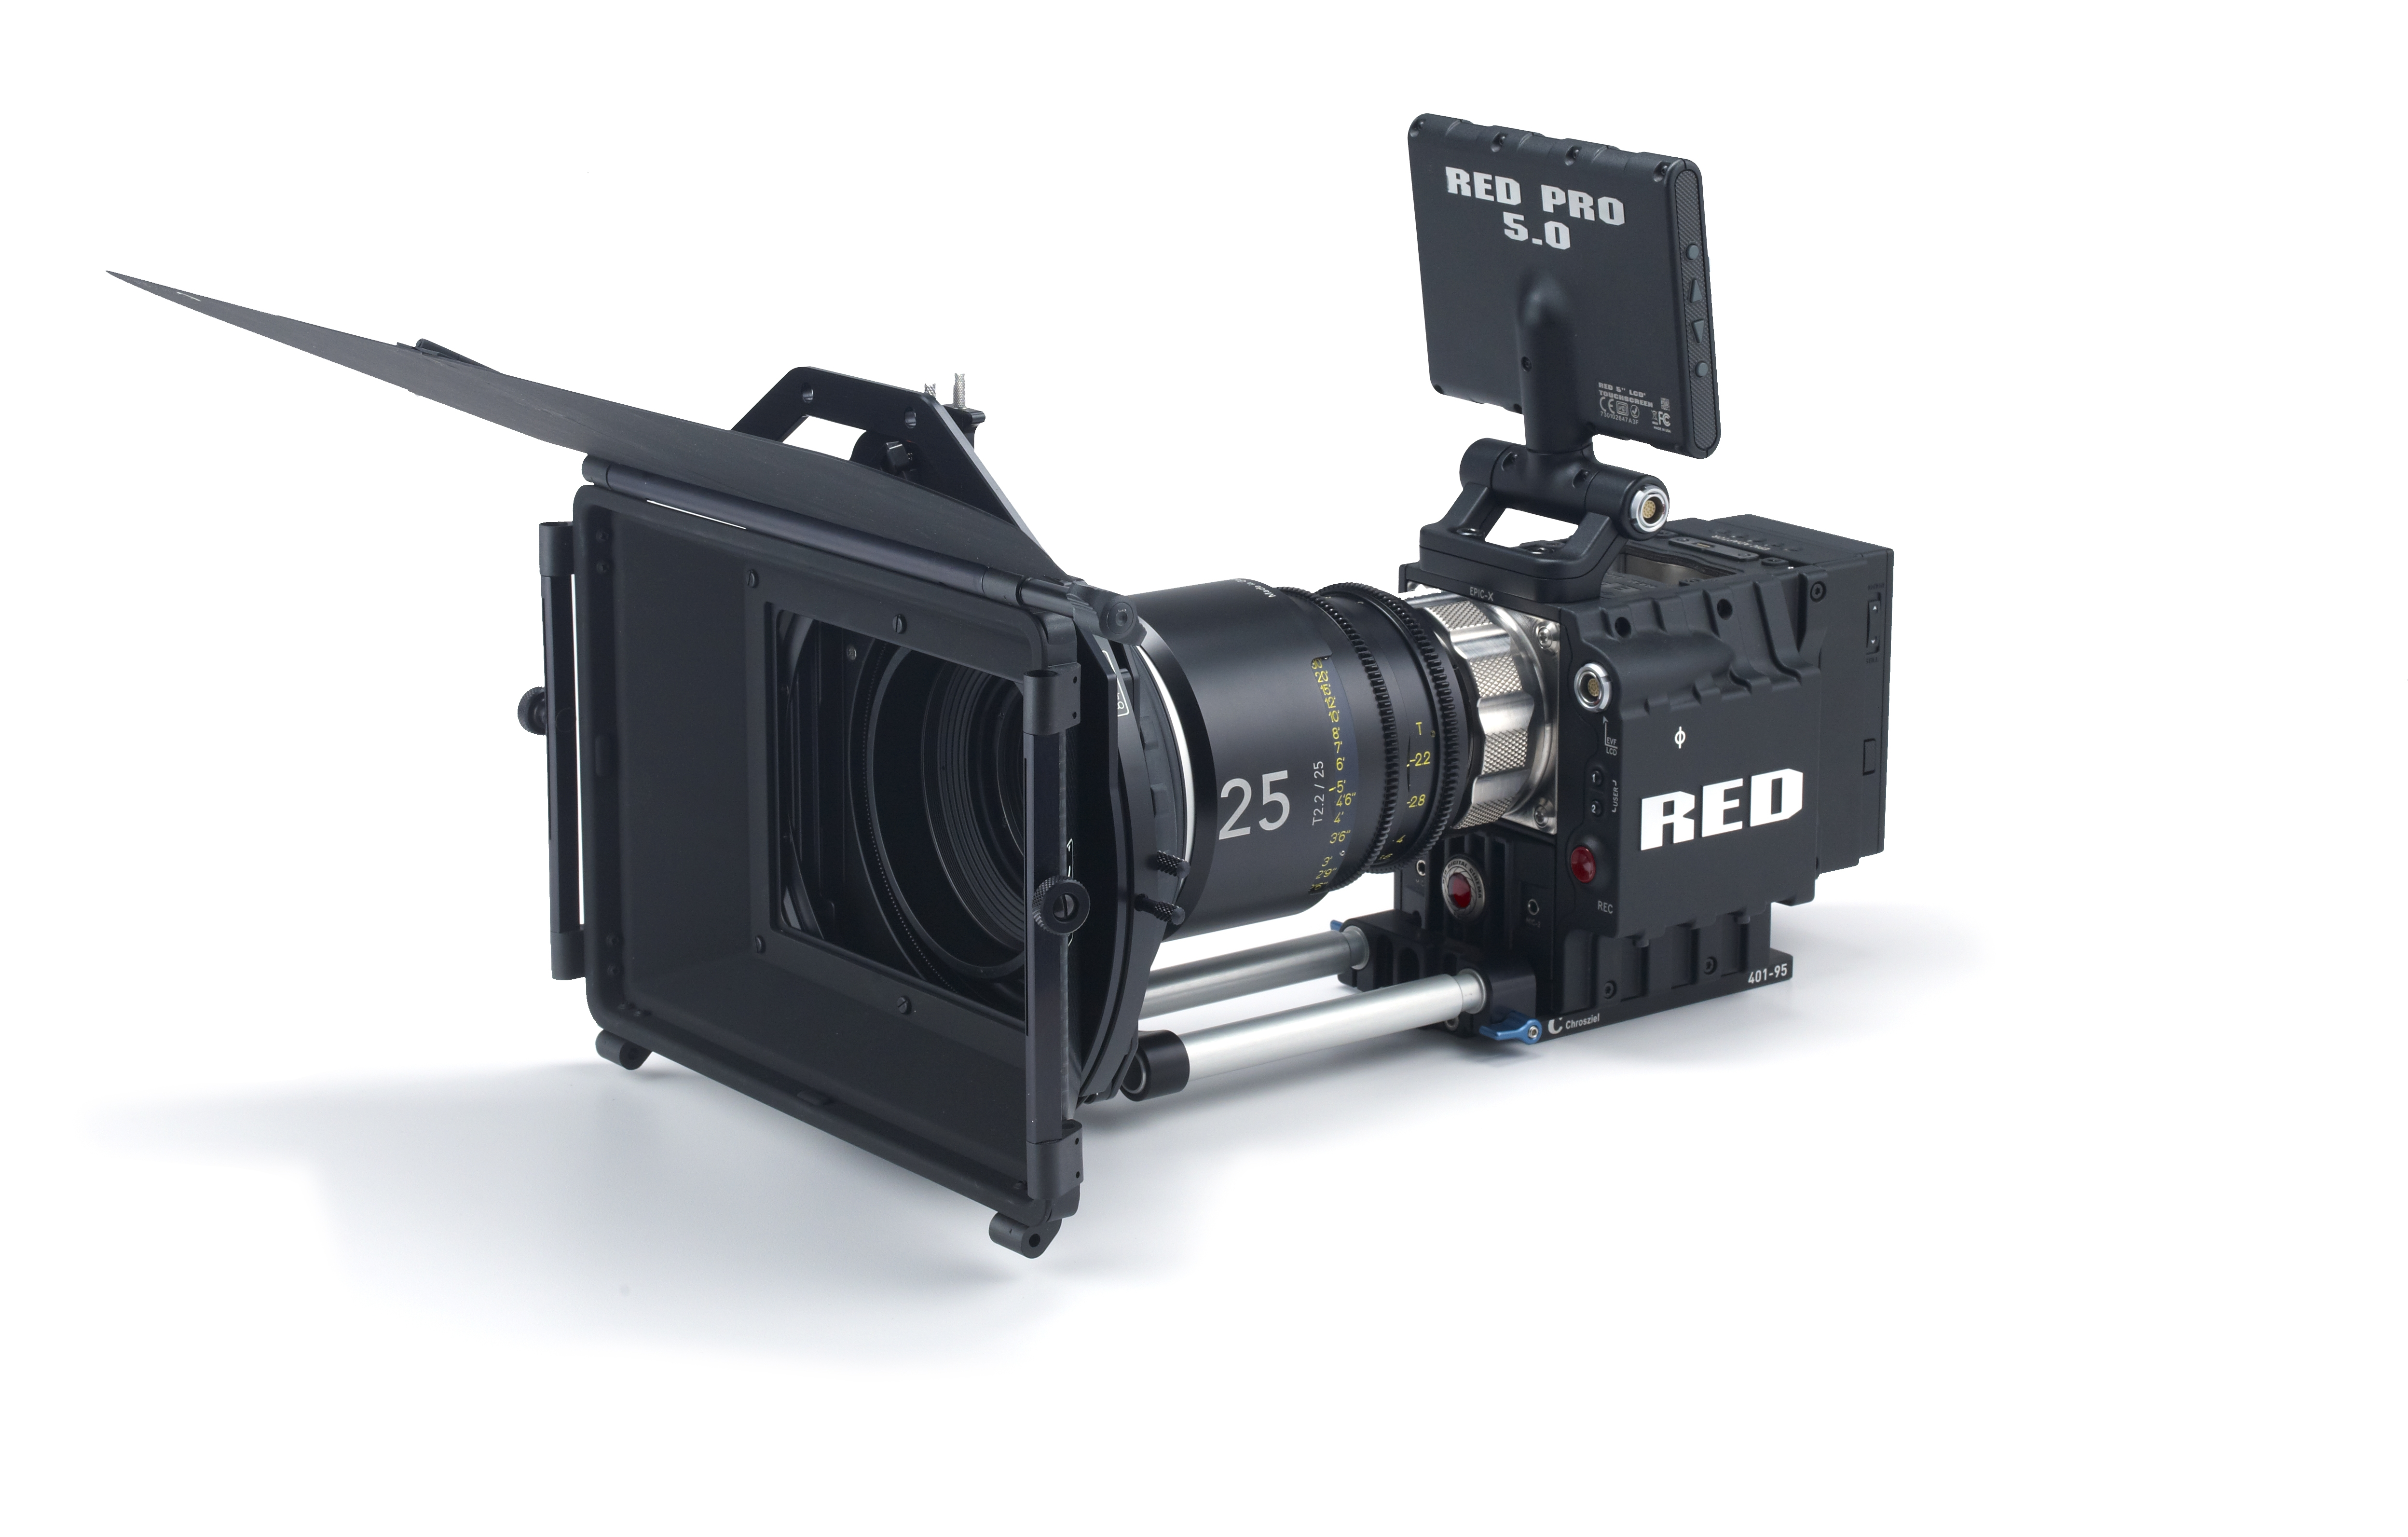 schneider-cine-xenar-iii-primes-lenses-on-red-camera